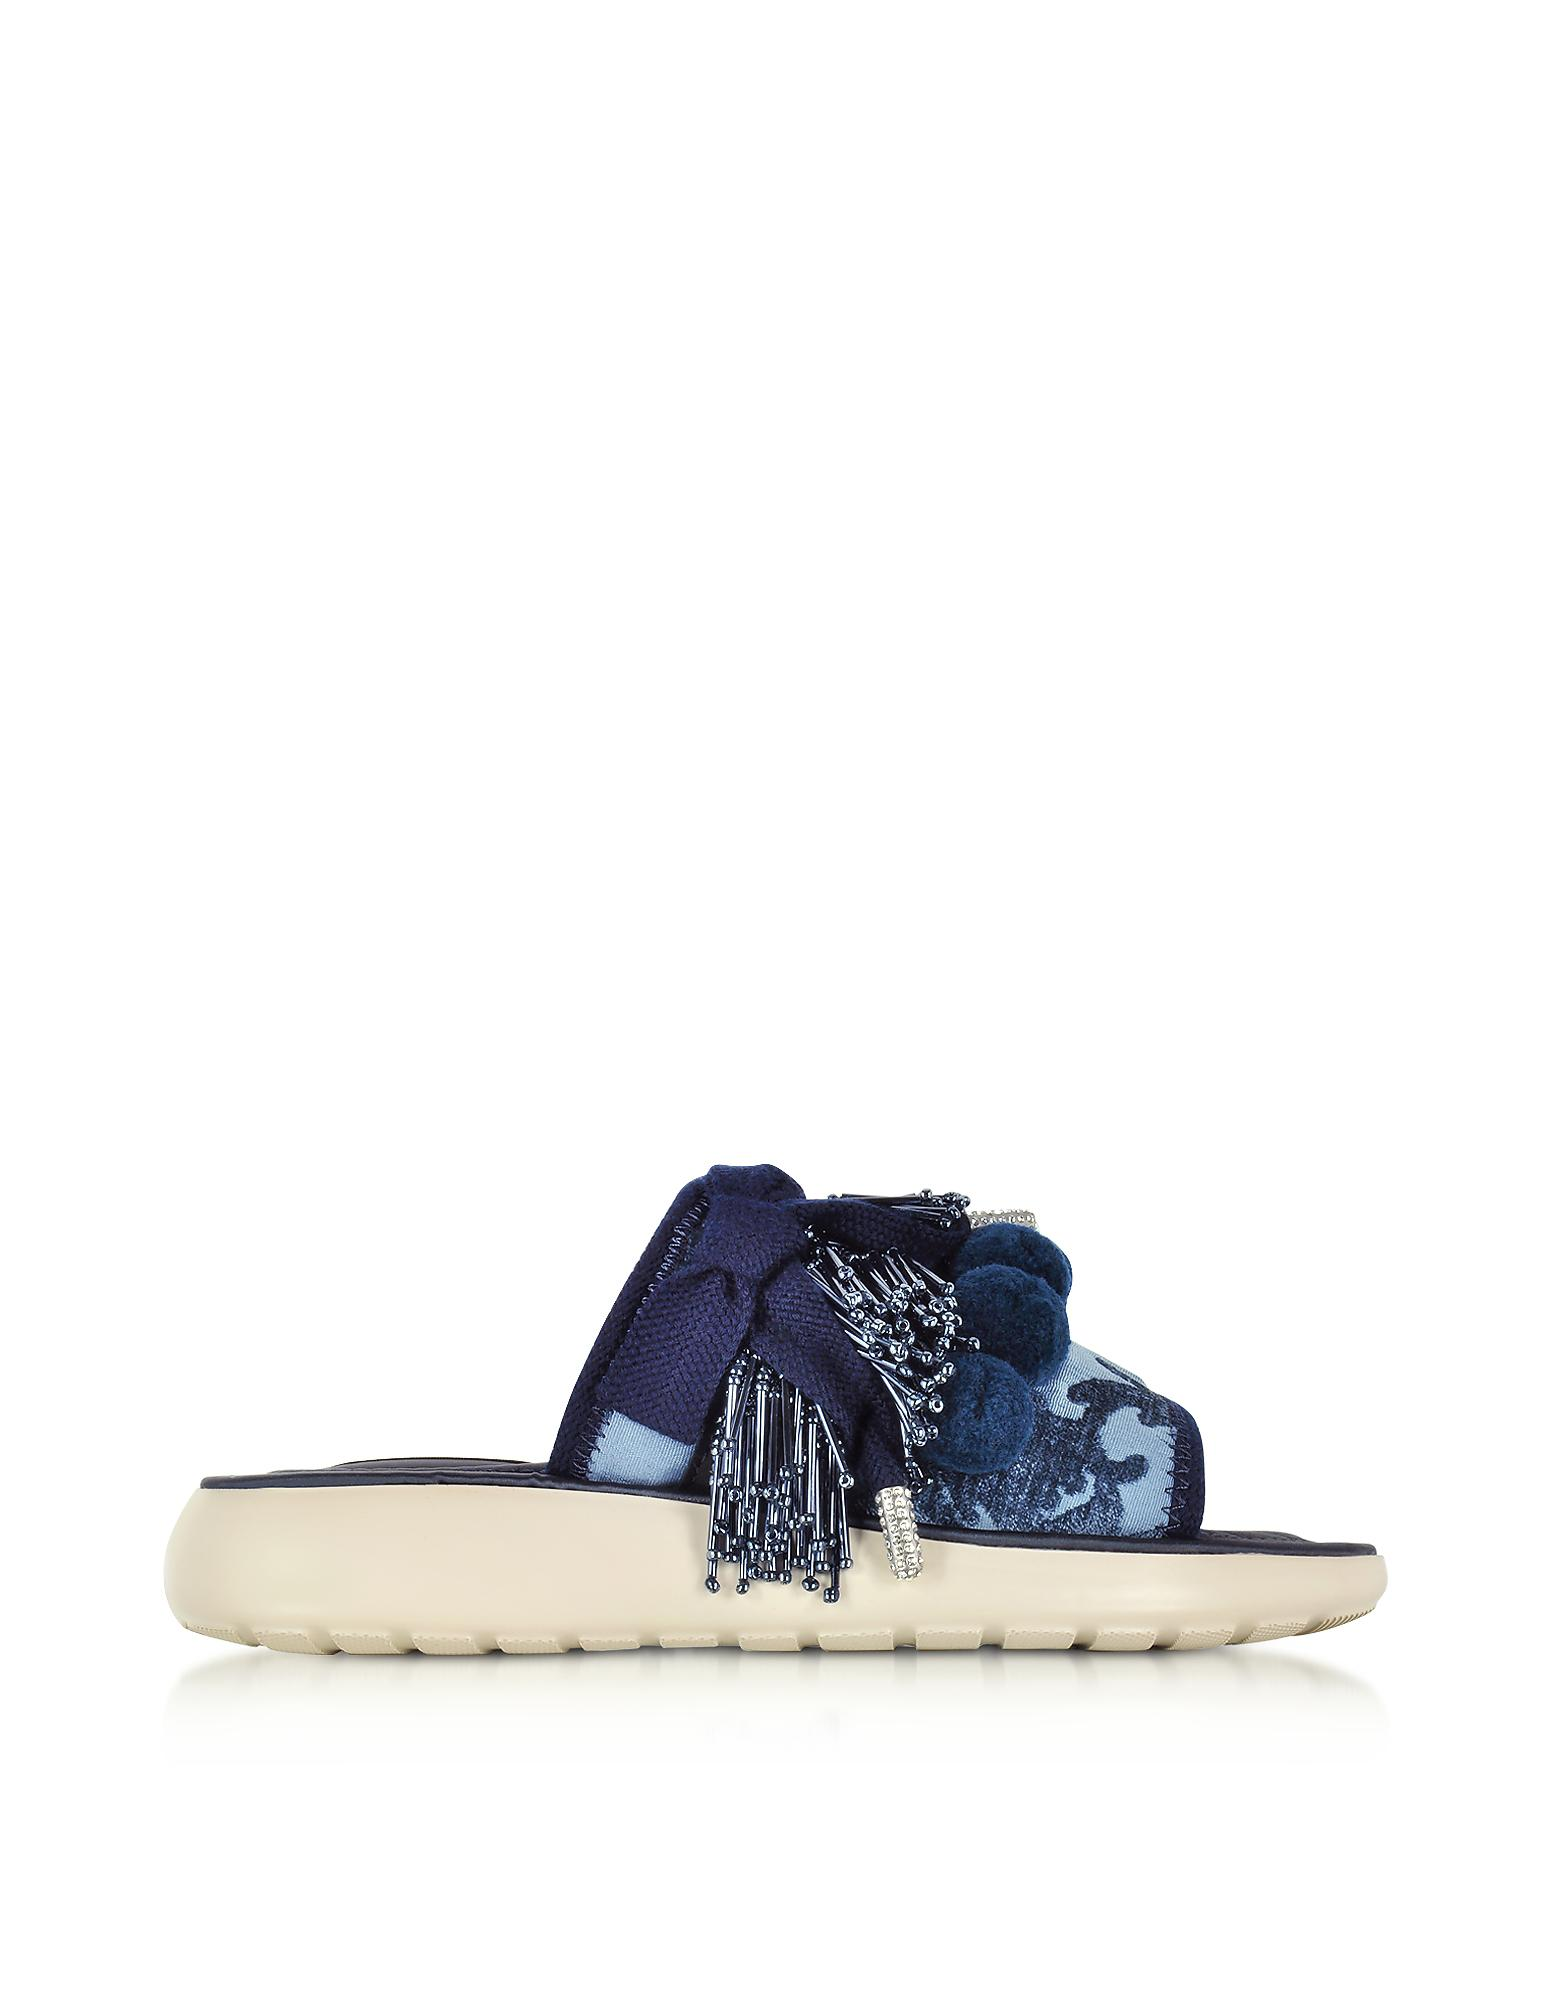 Womens Emerson Leather Slide Sandals Marc Jacobs aAlk1HyZg